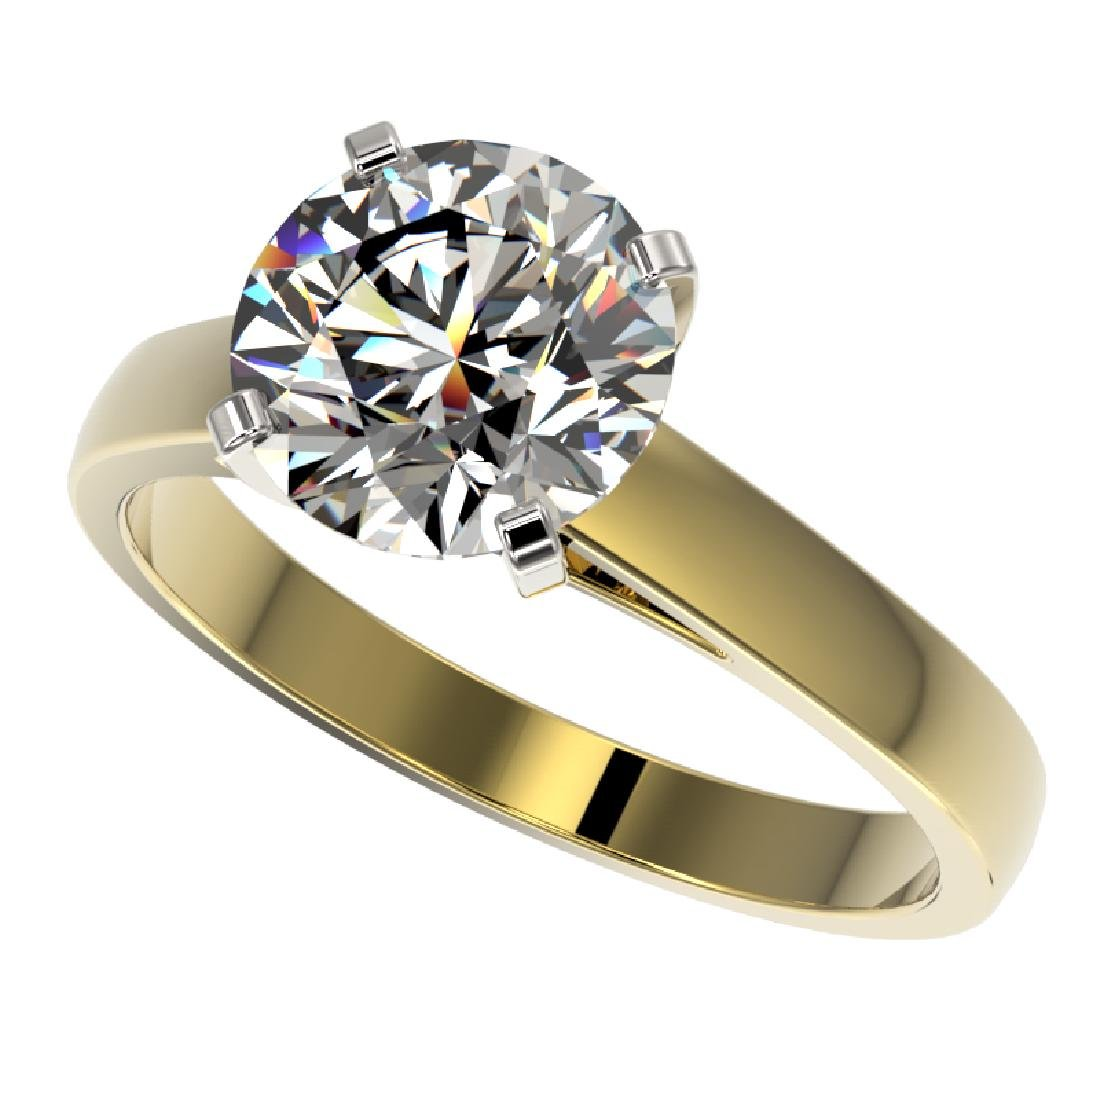 2.55 CTW Certified H-I Quality Diamond Solitaire Ring